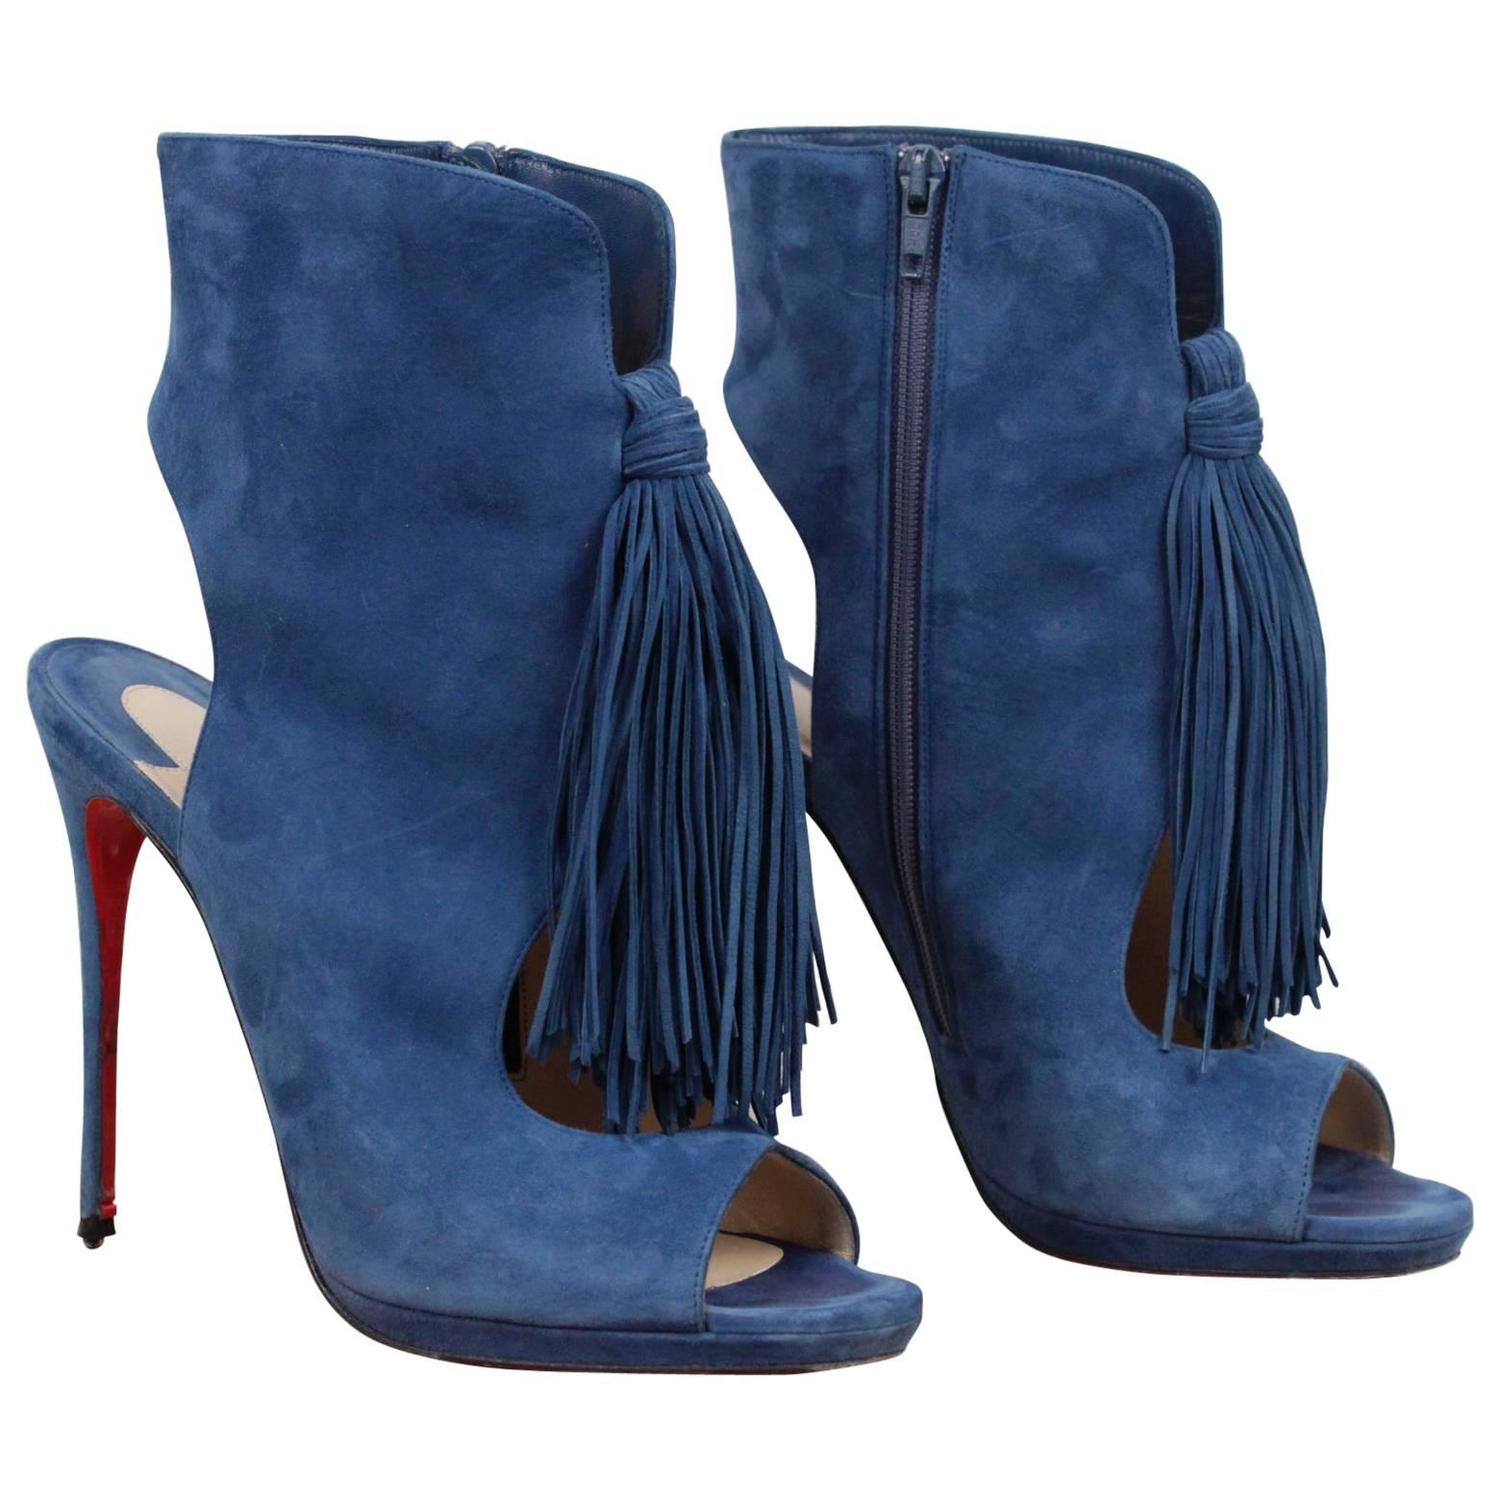 sneakers for cheap 433b6 bf84c CHRISTIAN LOUBOUTIN Blue Suede OTOKA Tassel ANKLE BOOTS Open Toe SIZE 40